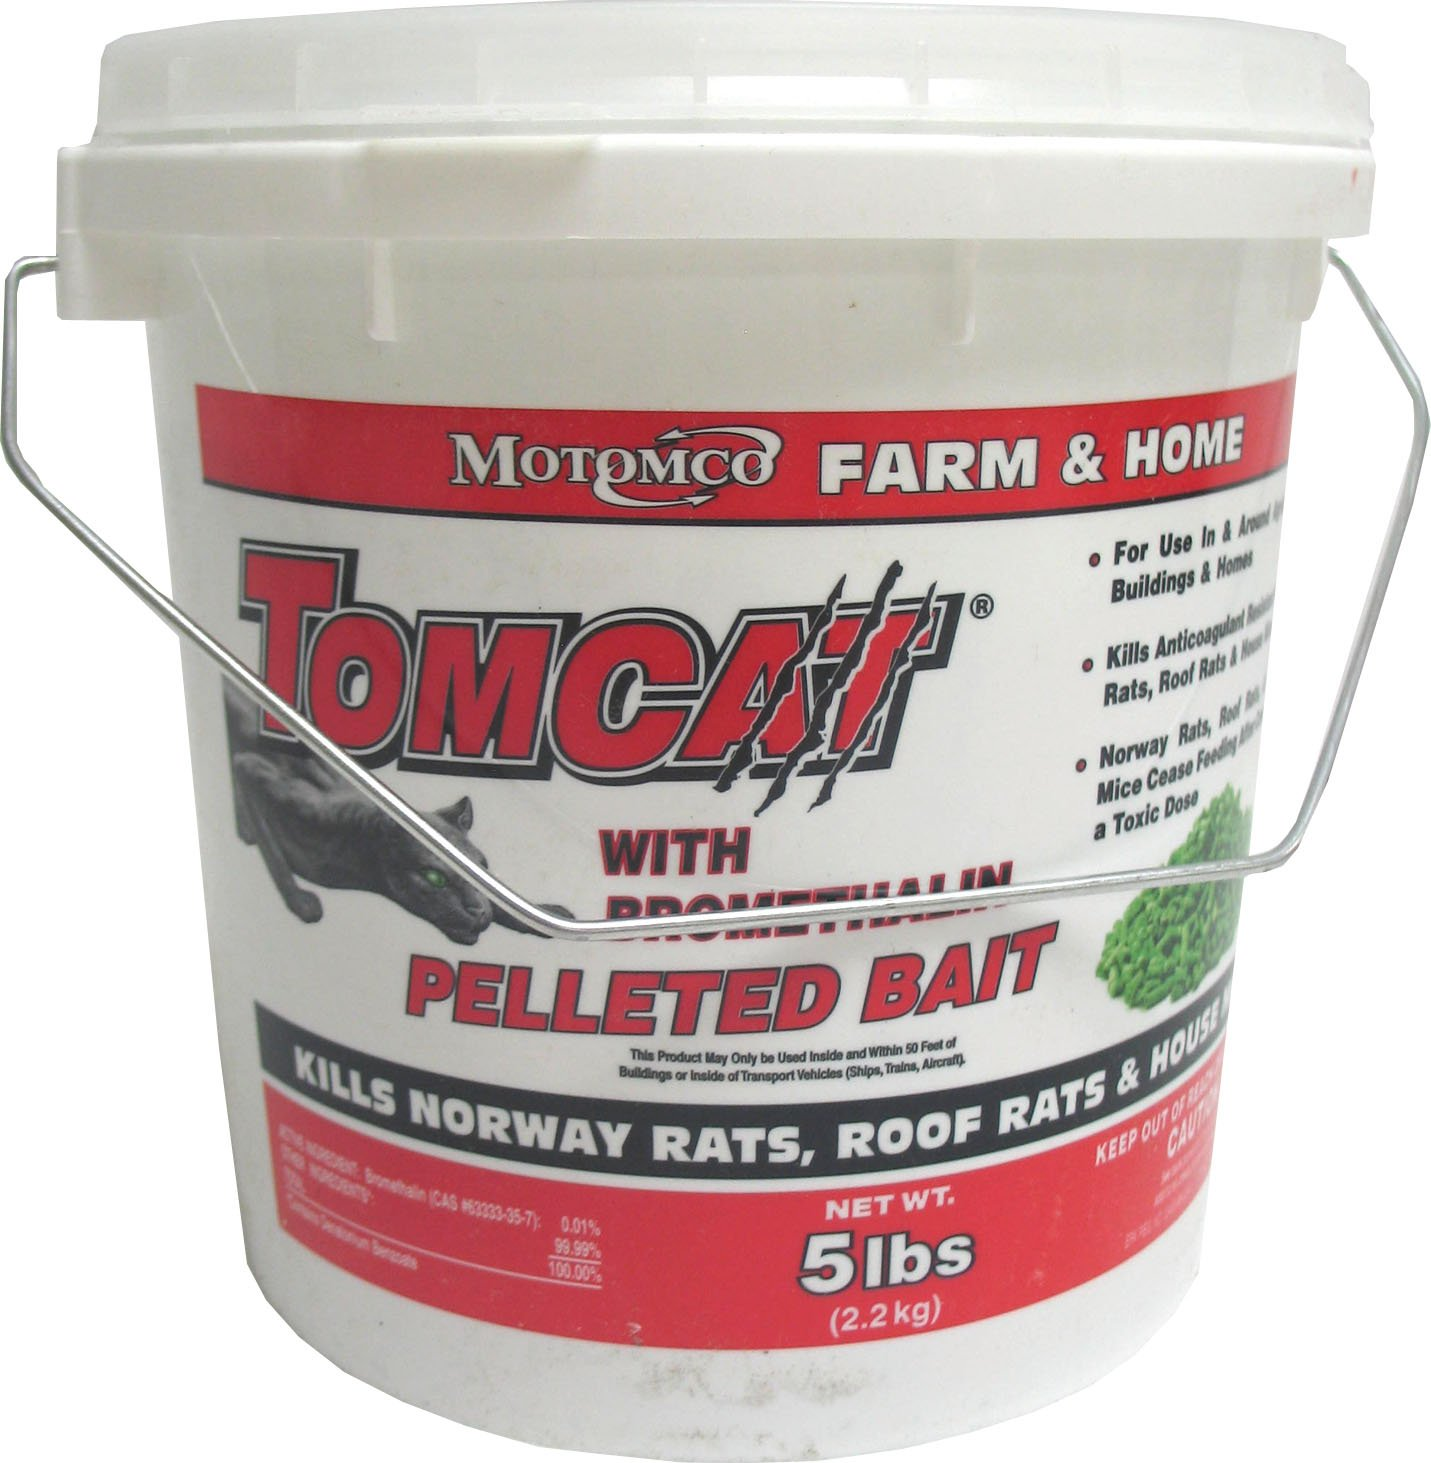 Motomco Tomcat Mouse and Rat Bromethalin Pellets, 5-Pound by Motomco